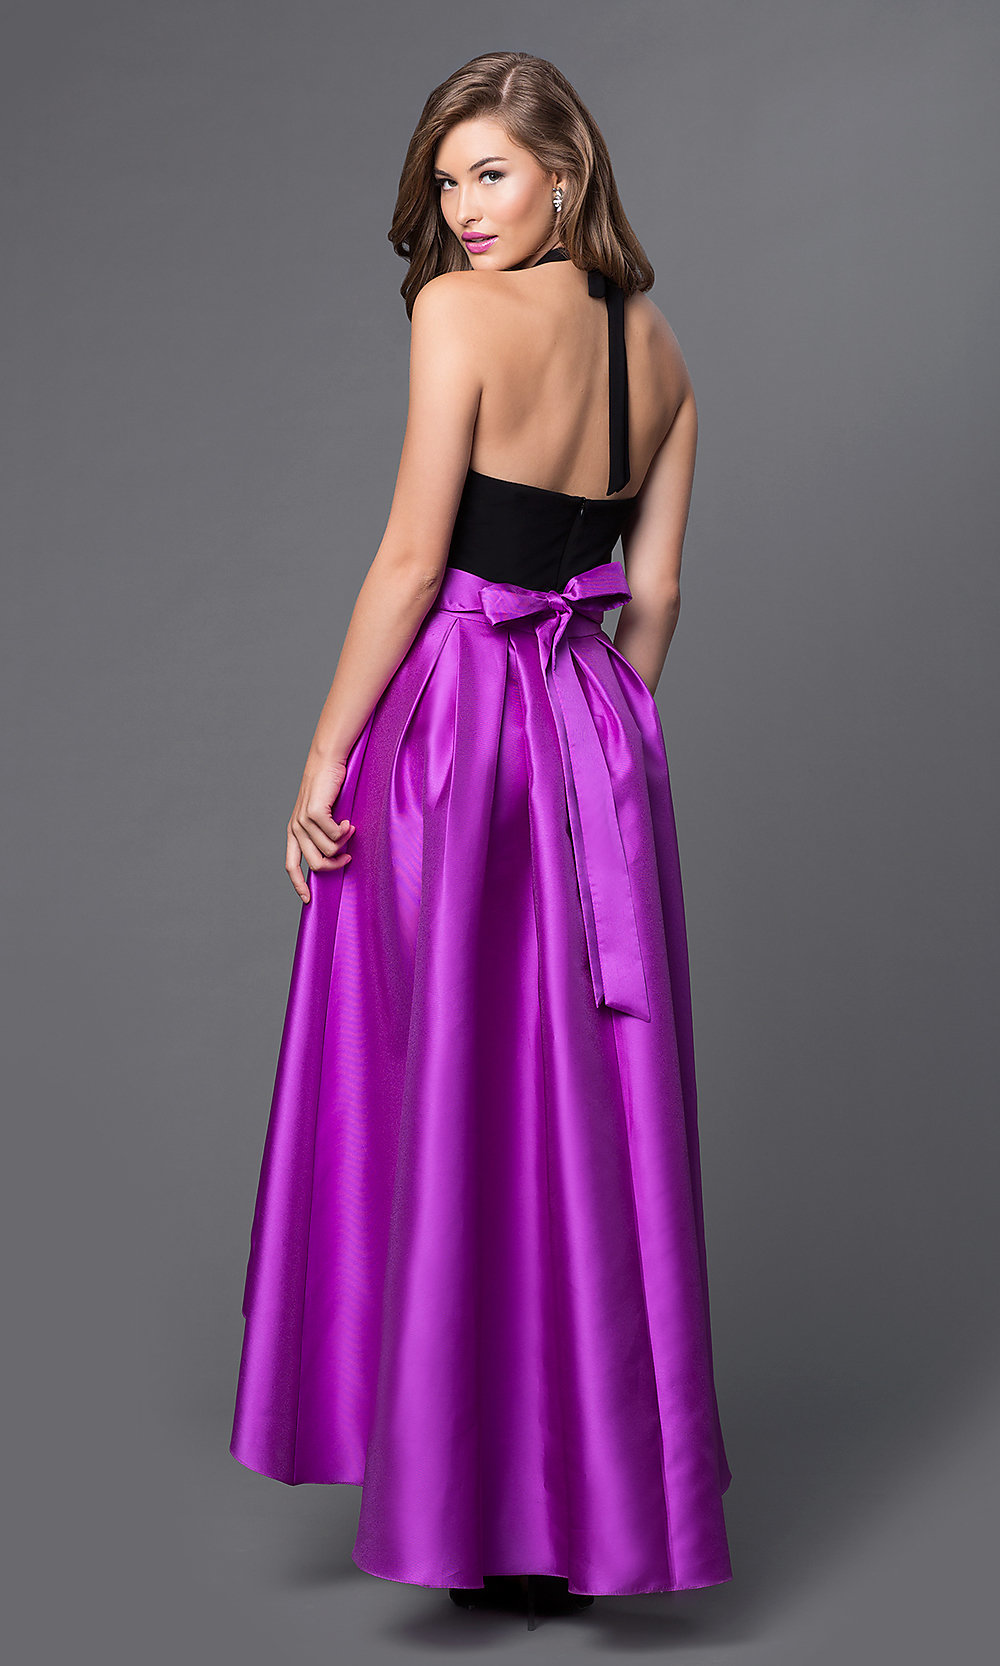 Two Tone High Low Halter Prom Dress - PromGirl